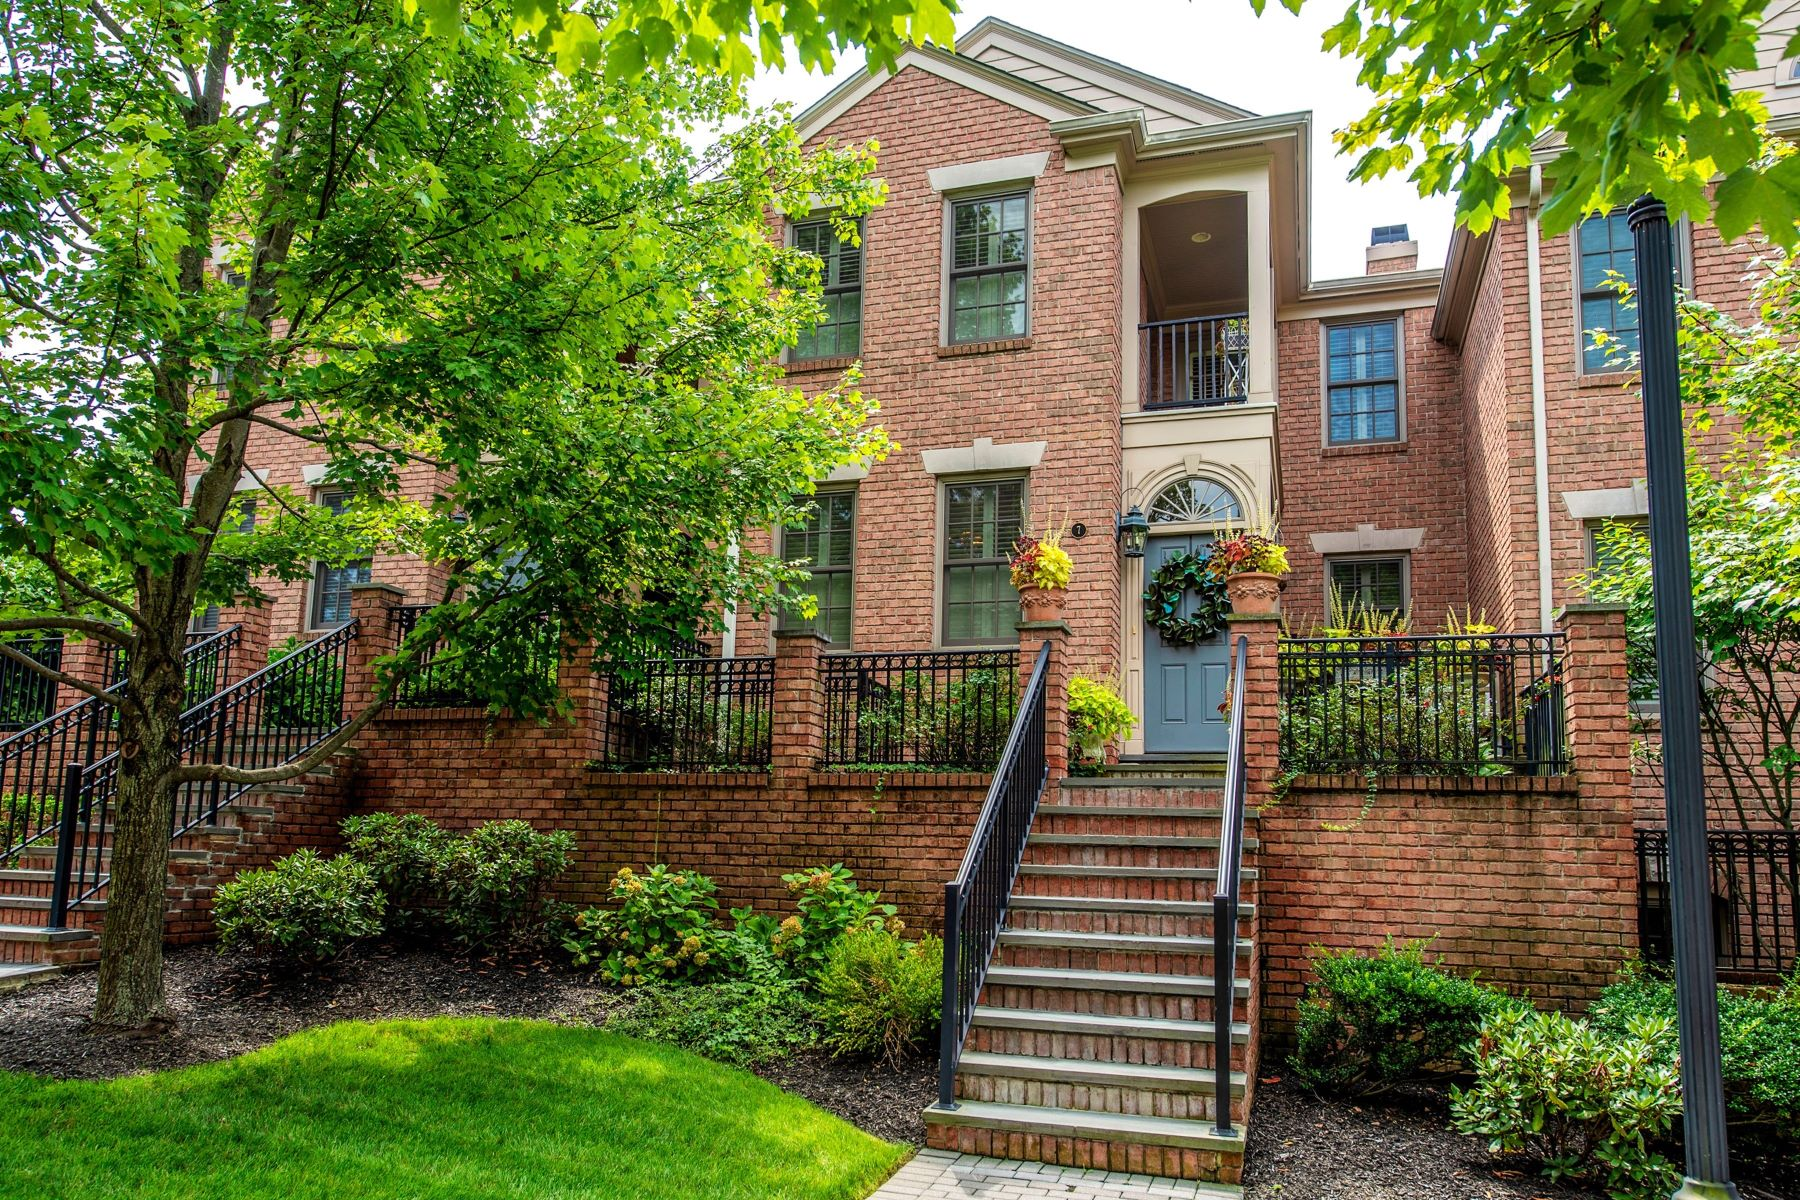 Townhouse for Sale at Luxury Townhouse 25 Norwood Avenue, Unit 7, Summit, New Jersey 07901 United States